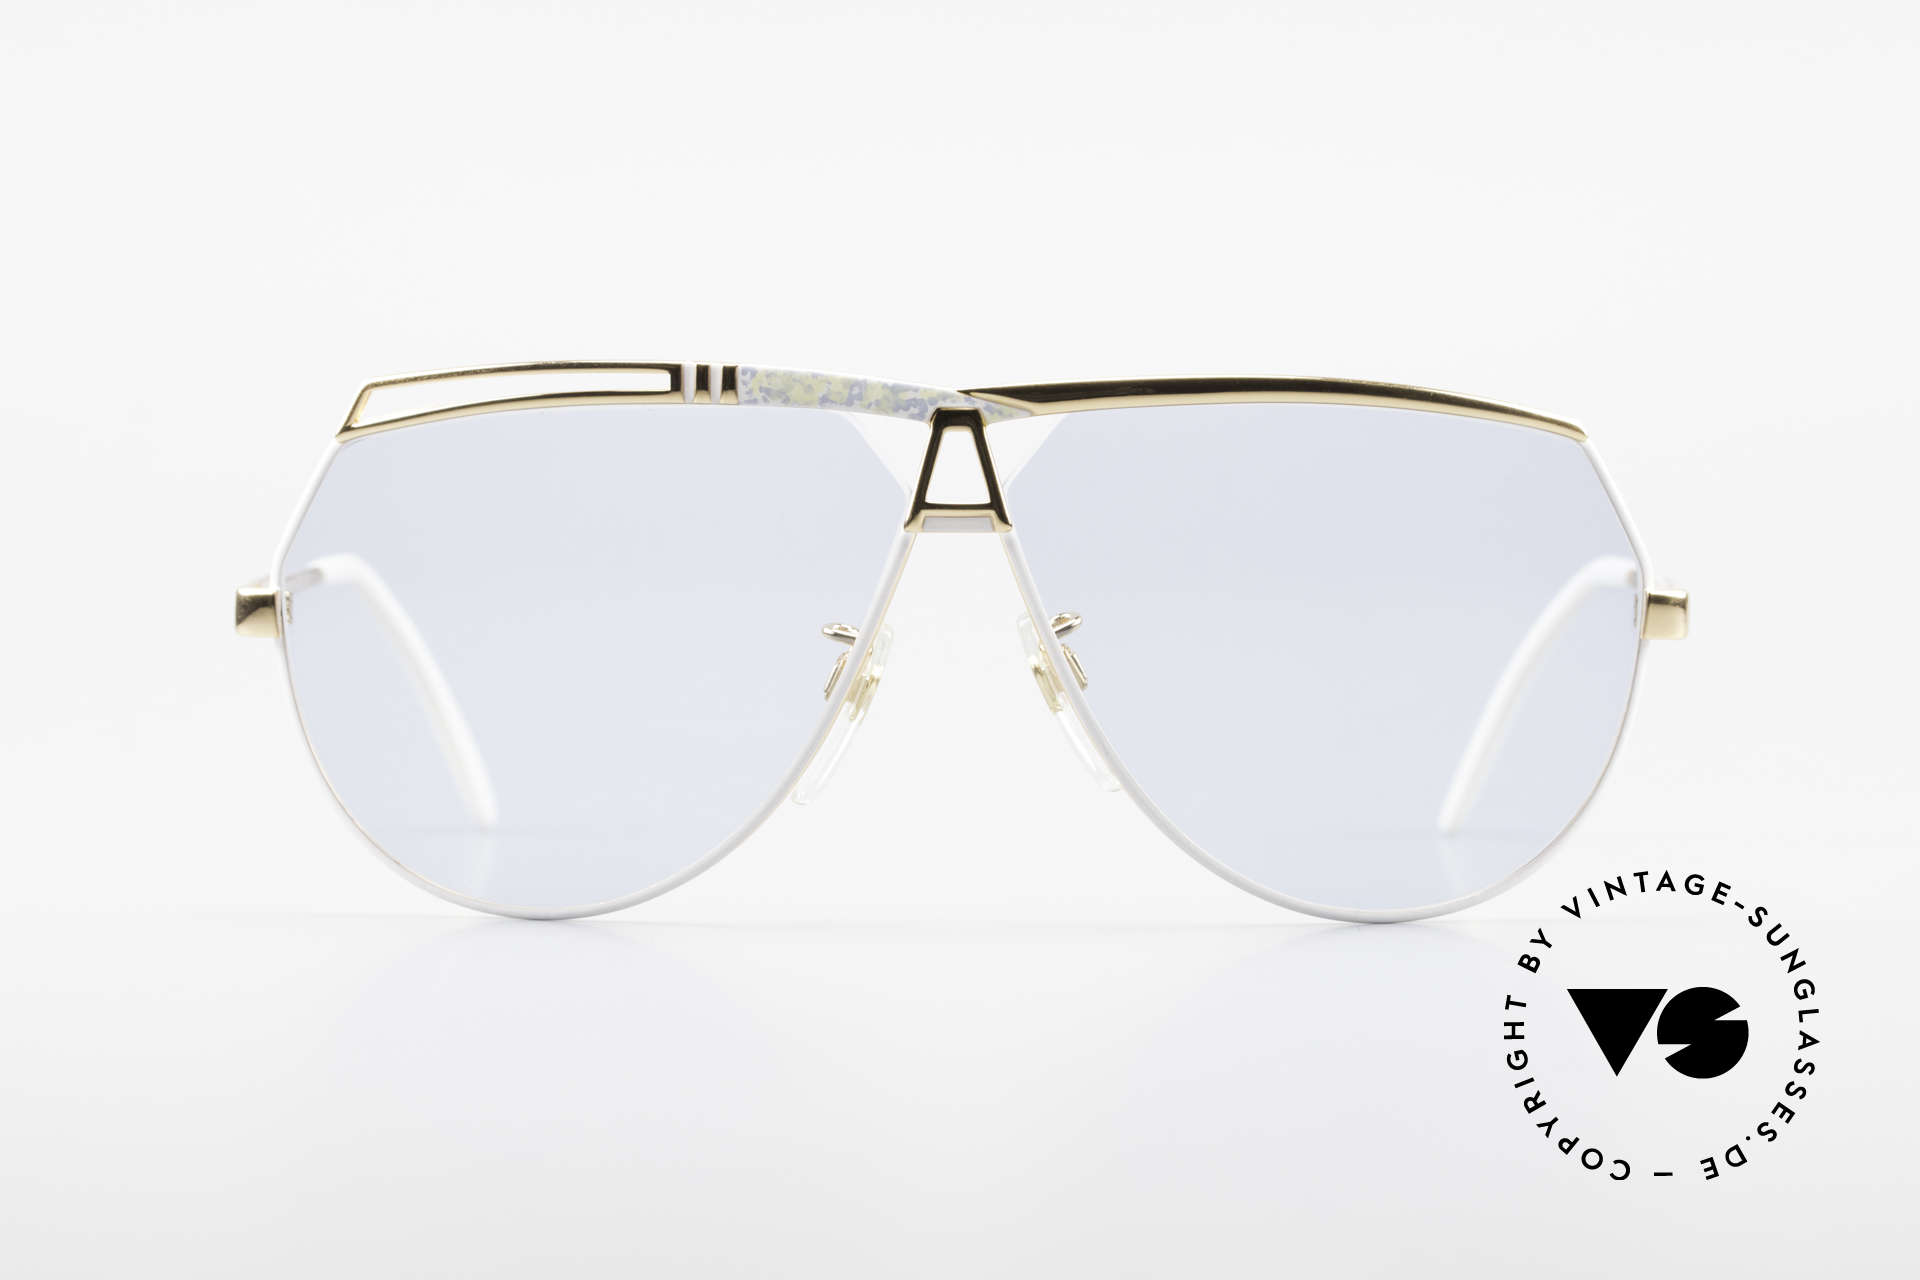 Cazal 954 True Vintage XL Sunglasses, handmade from 1989 - 1992 in Passau, Bavaria, Made for Men